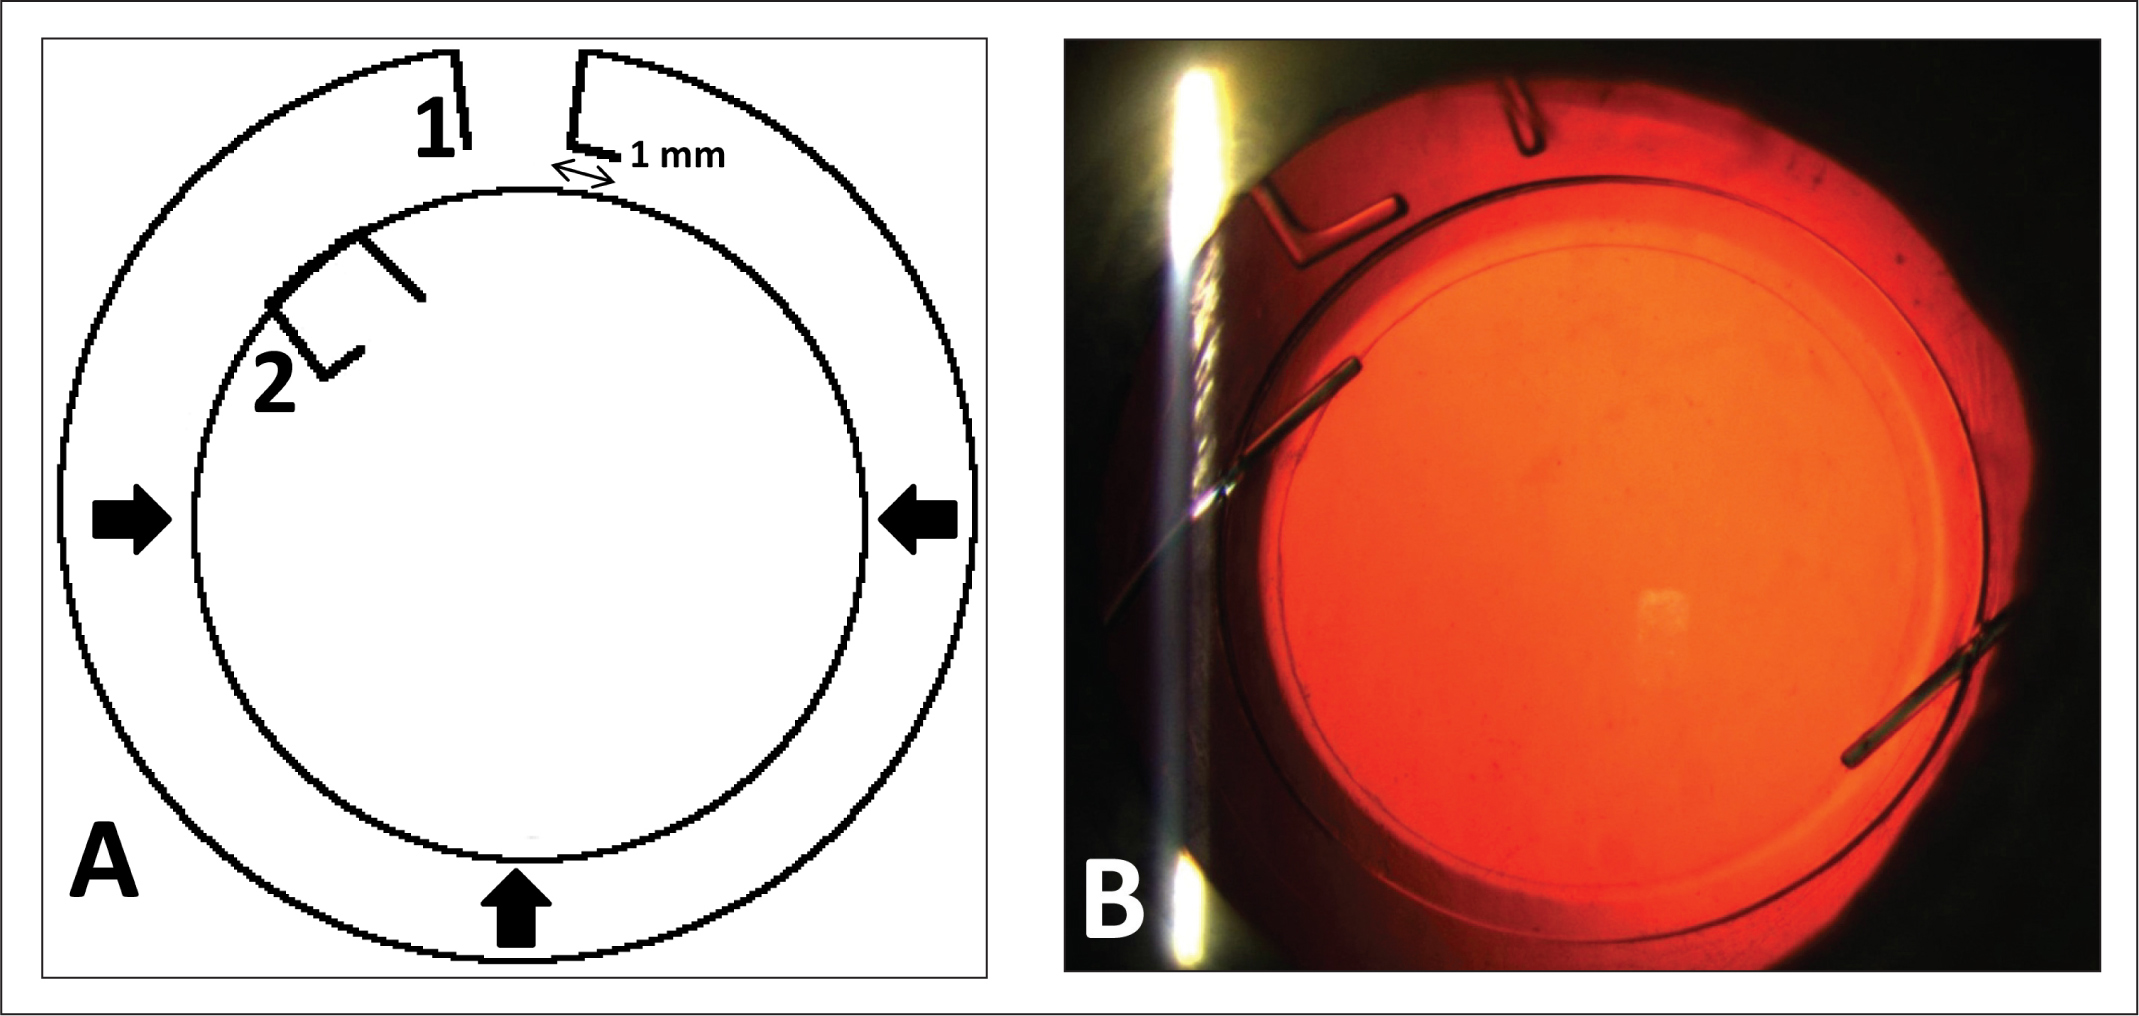 (A) Capsular measuring ring (12 mm) in its relaxed state (1) and compressed capsular measuring ring (2) with overlapping appendices. (B) Slit-lamp photograph showing measurement ring after laser-assisted cataract surgery.